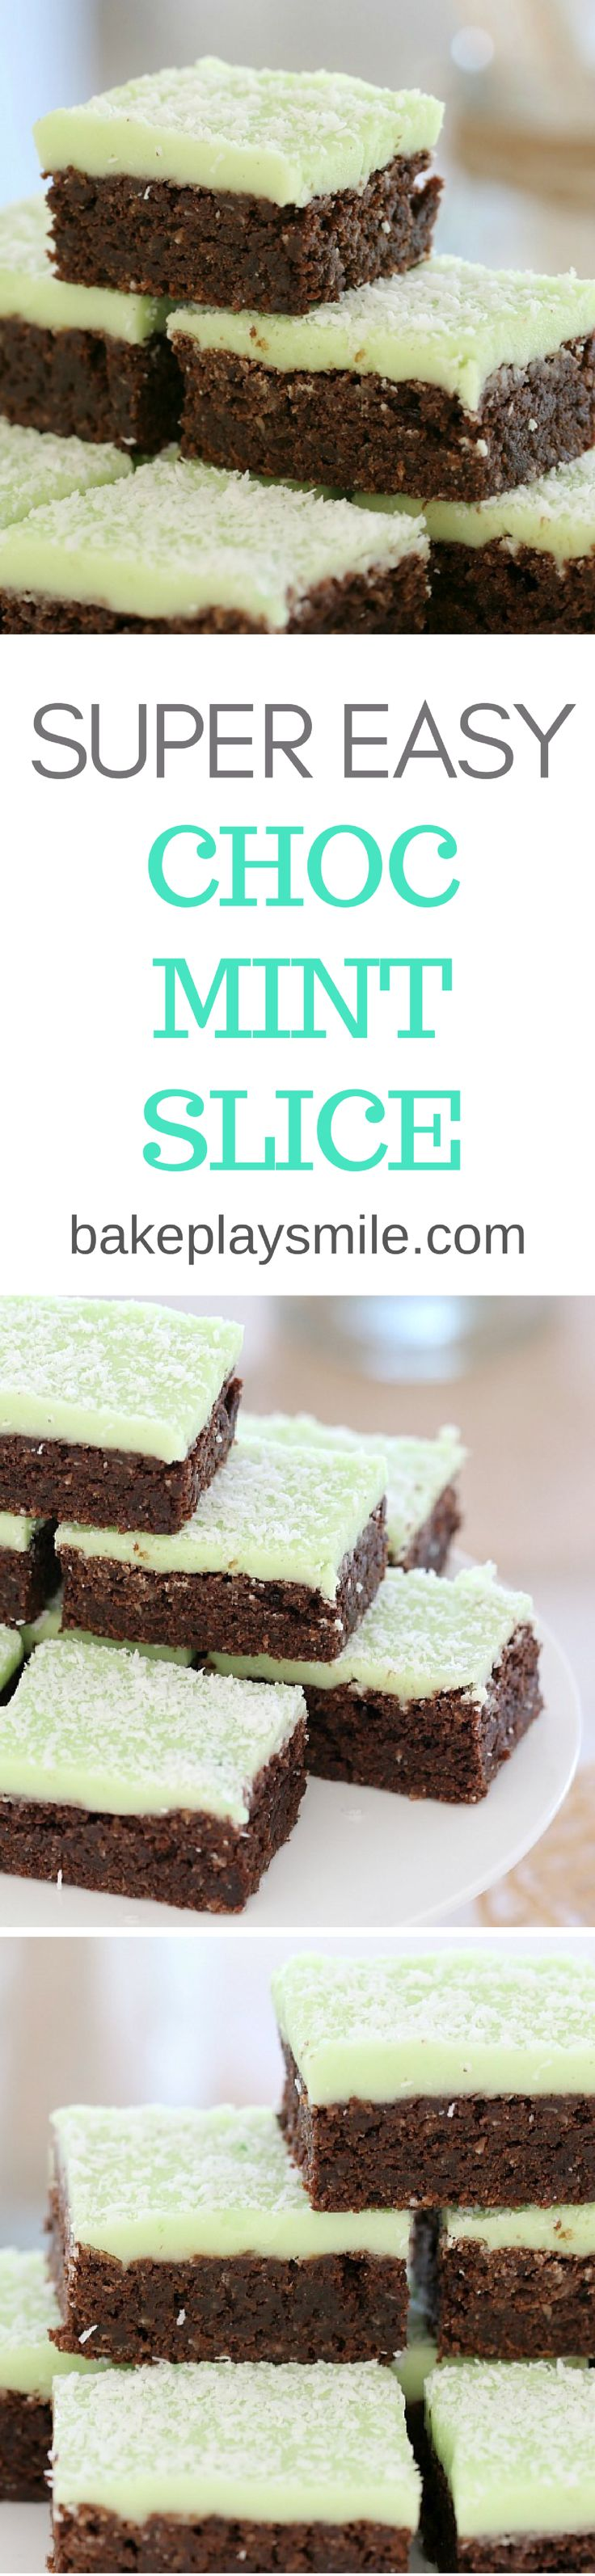 A delicious Thermomix Chocolate Mint Slice that's super easy to make… and tastes great! This one is always a winner with kids and adults alike. #easy #recipe #slice #bars #mint #chocolate #conventional #thermomix #baking #peppermint